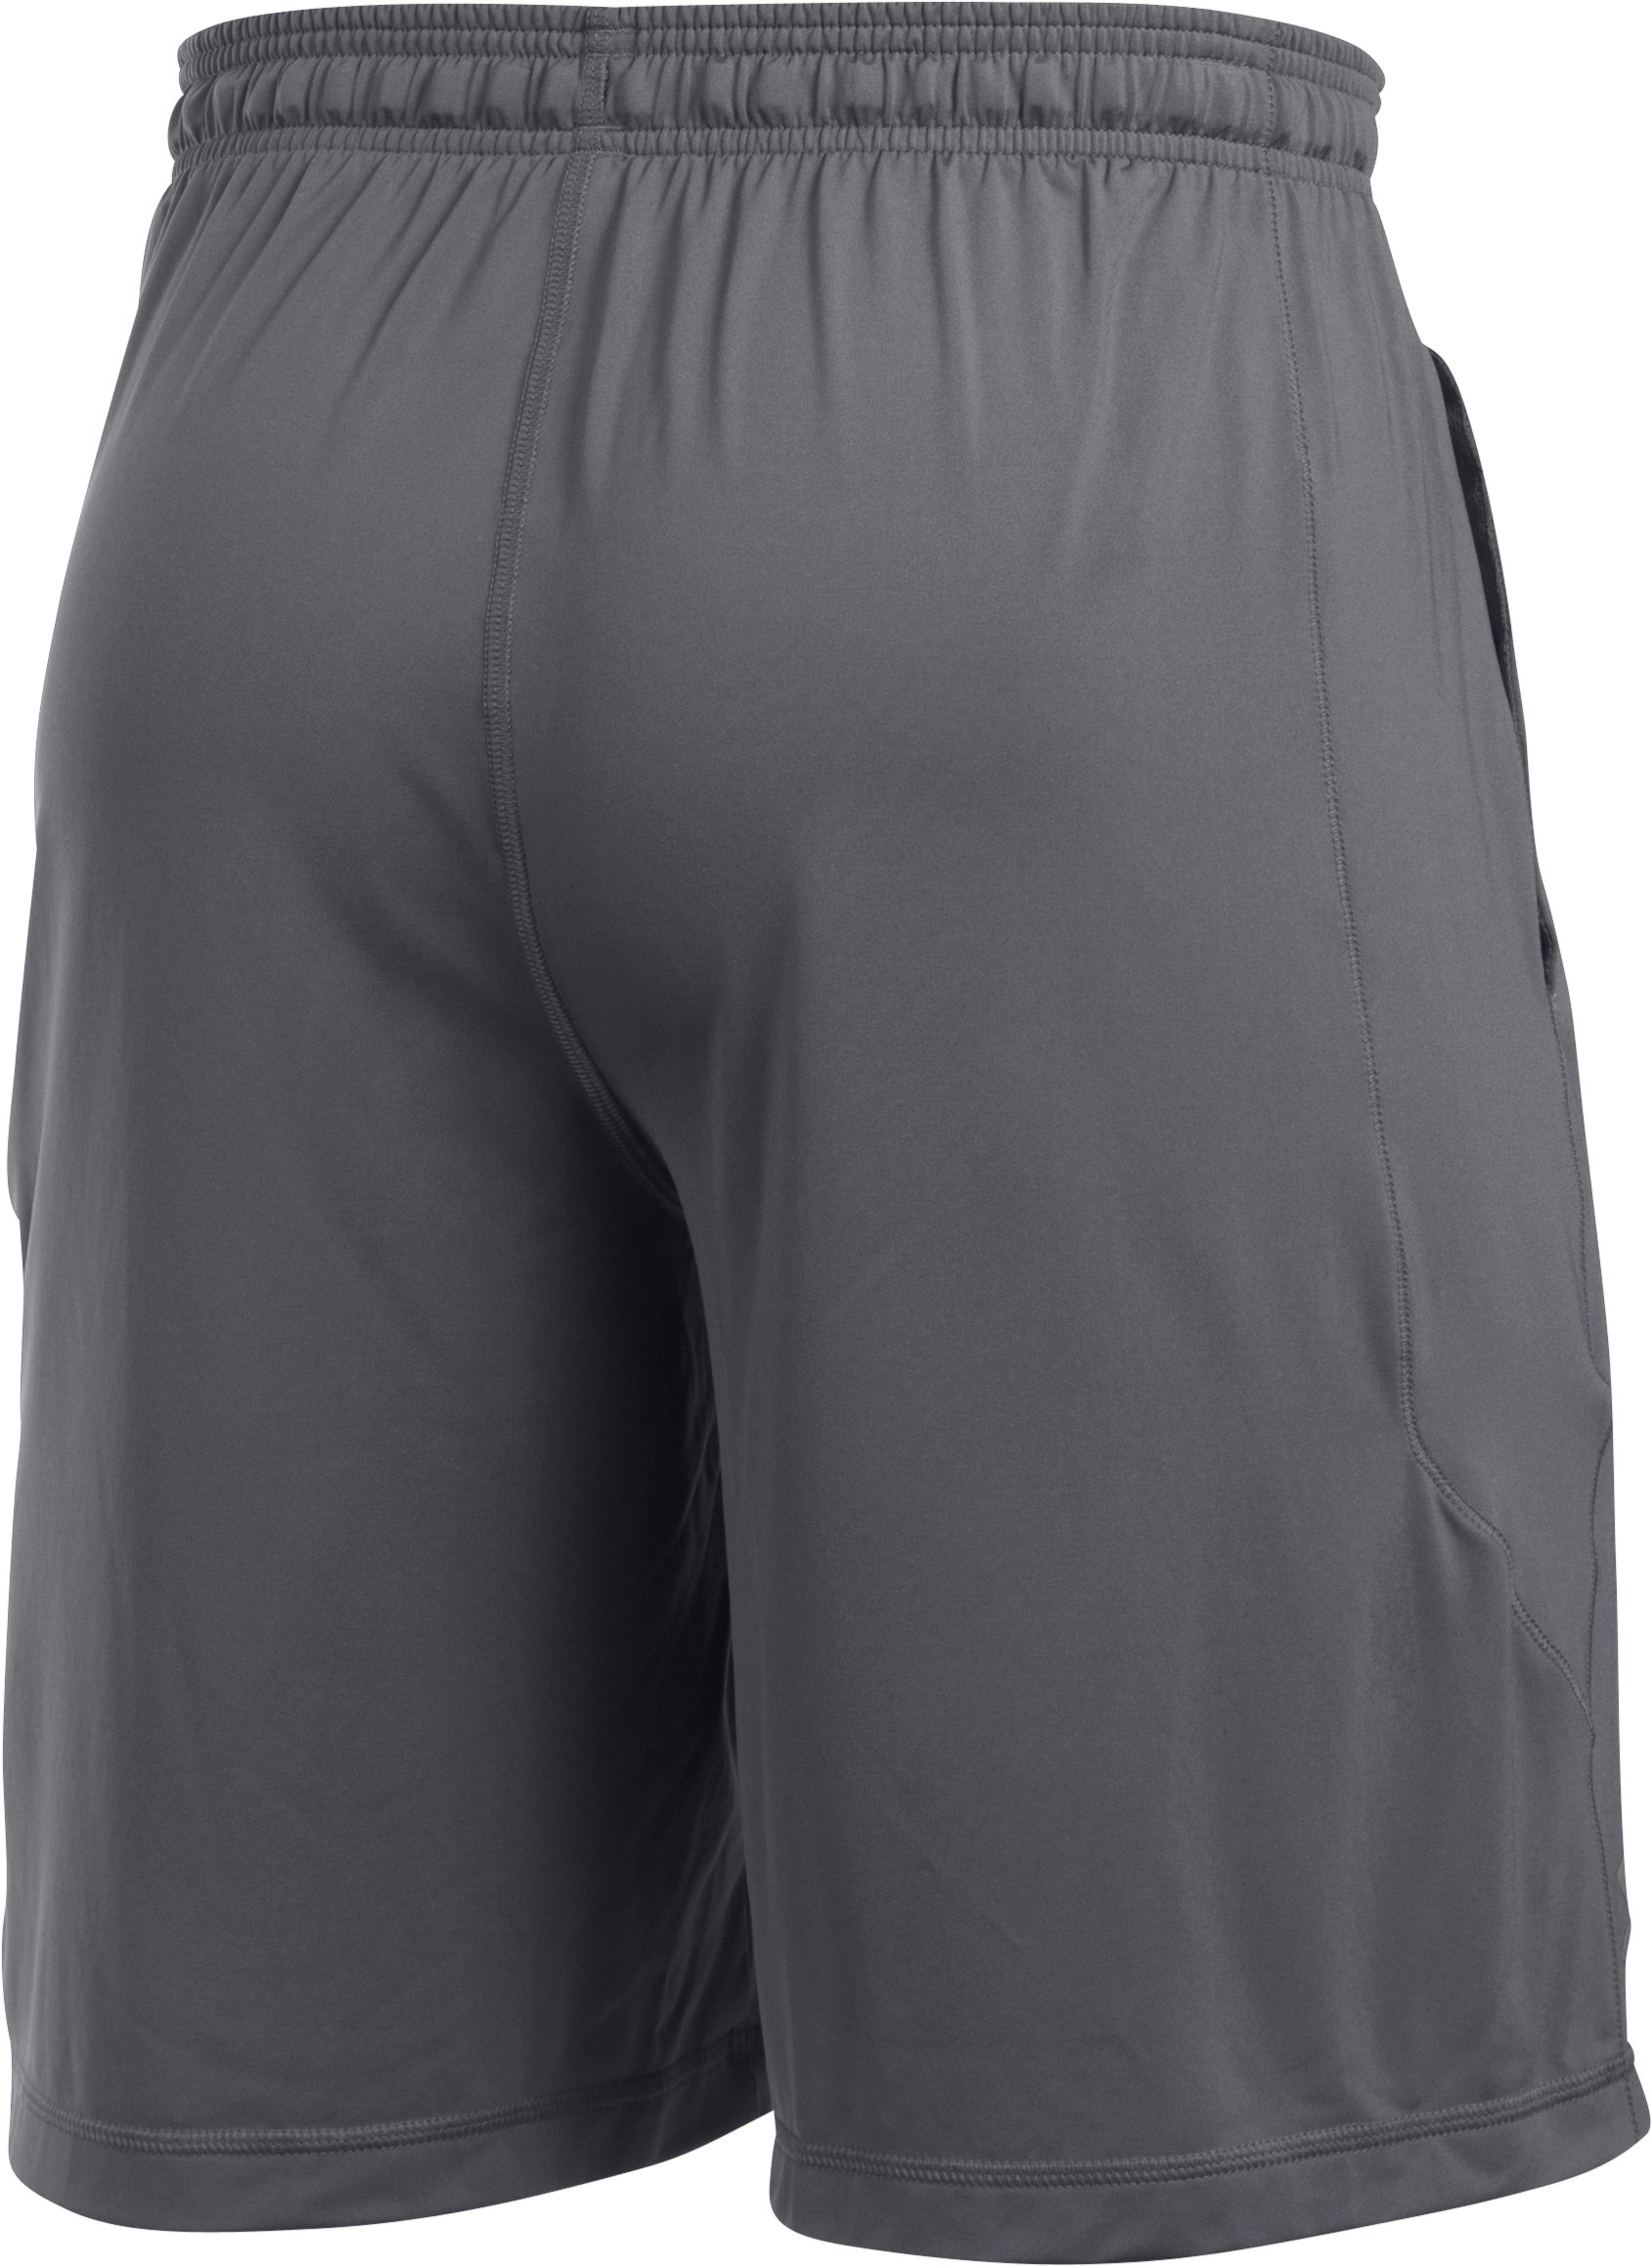 Men's Los Angeles Dodgers Raid Shorts, Graphite, undefined